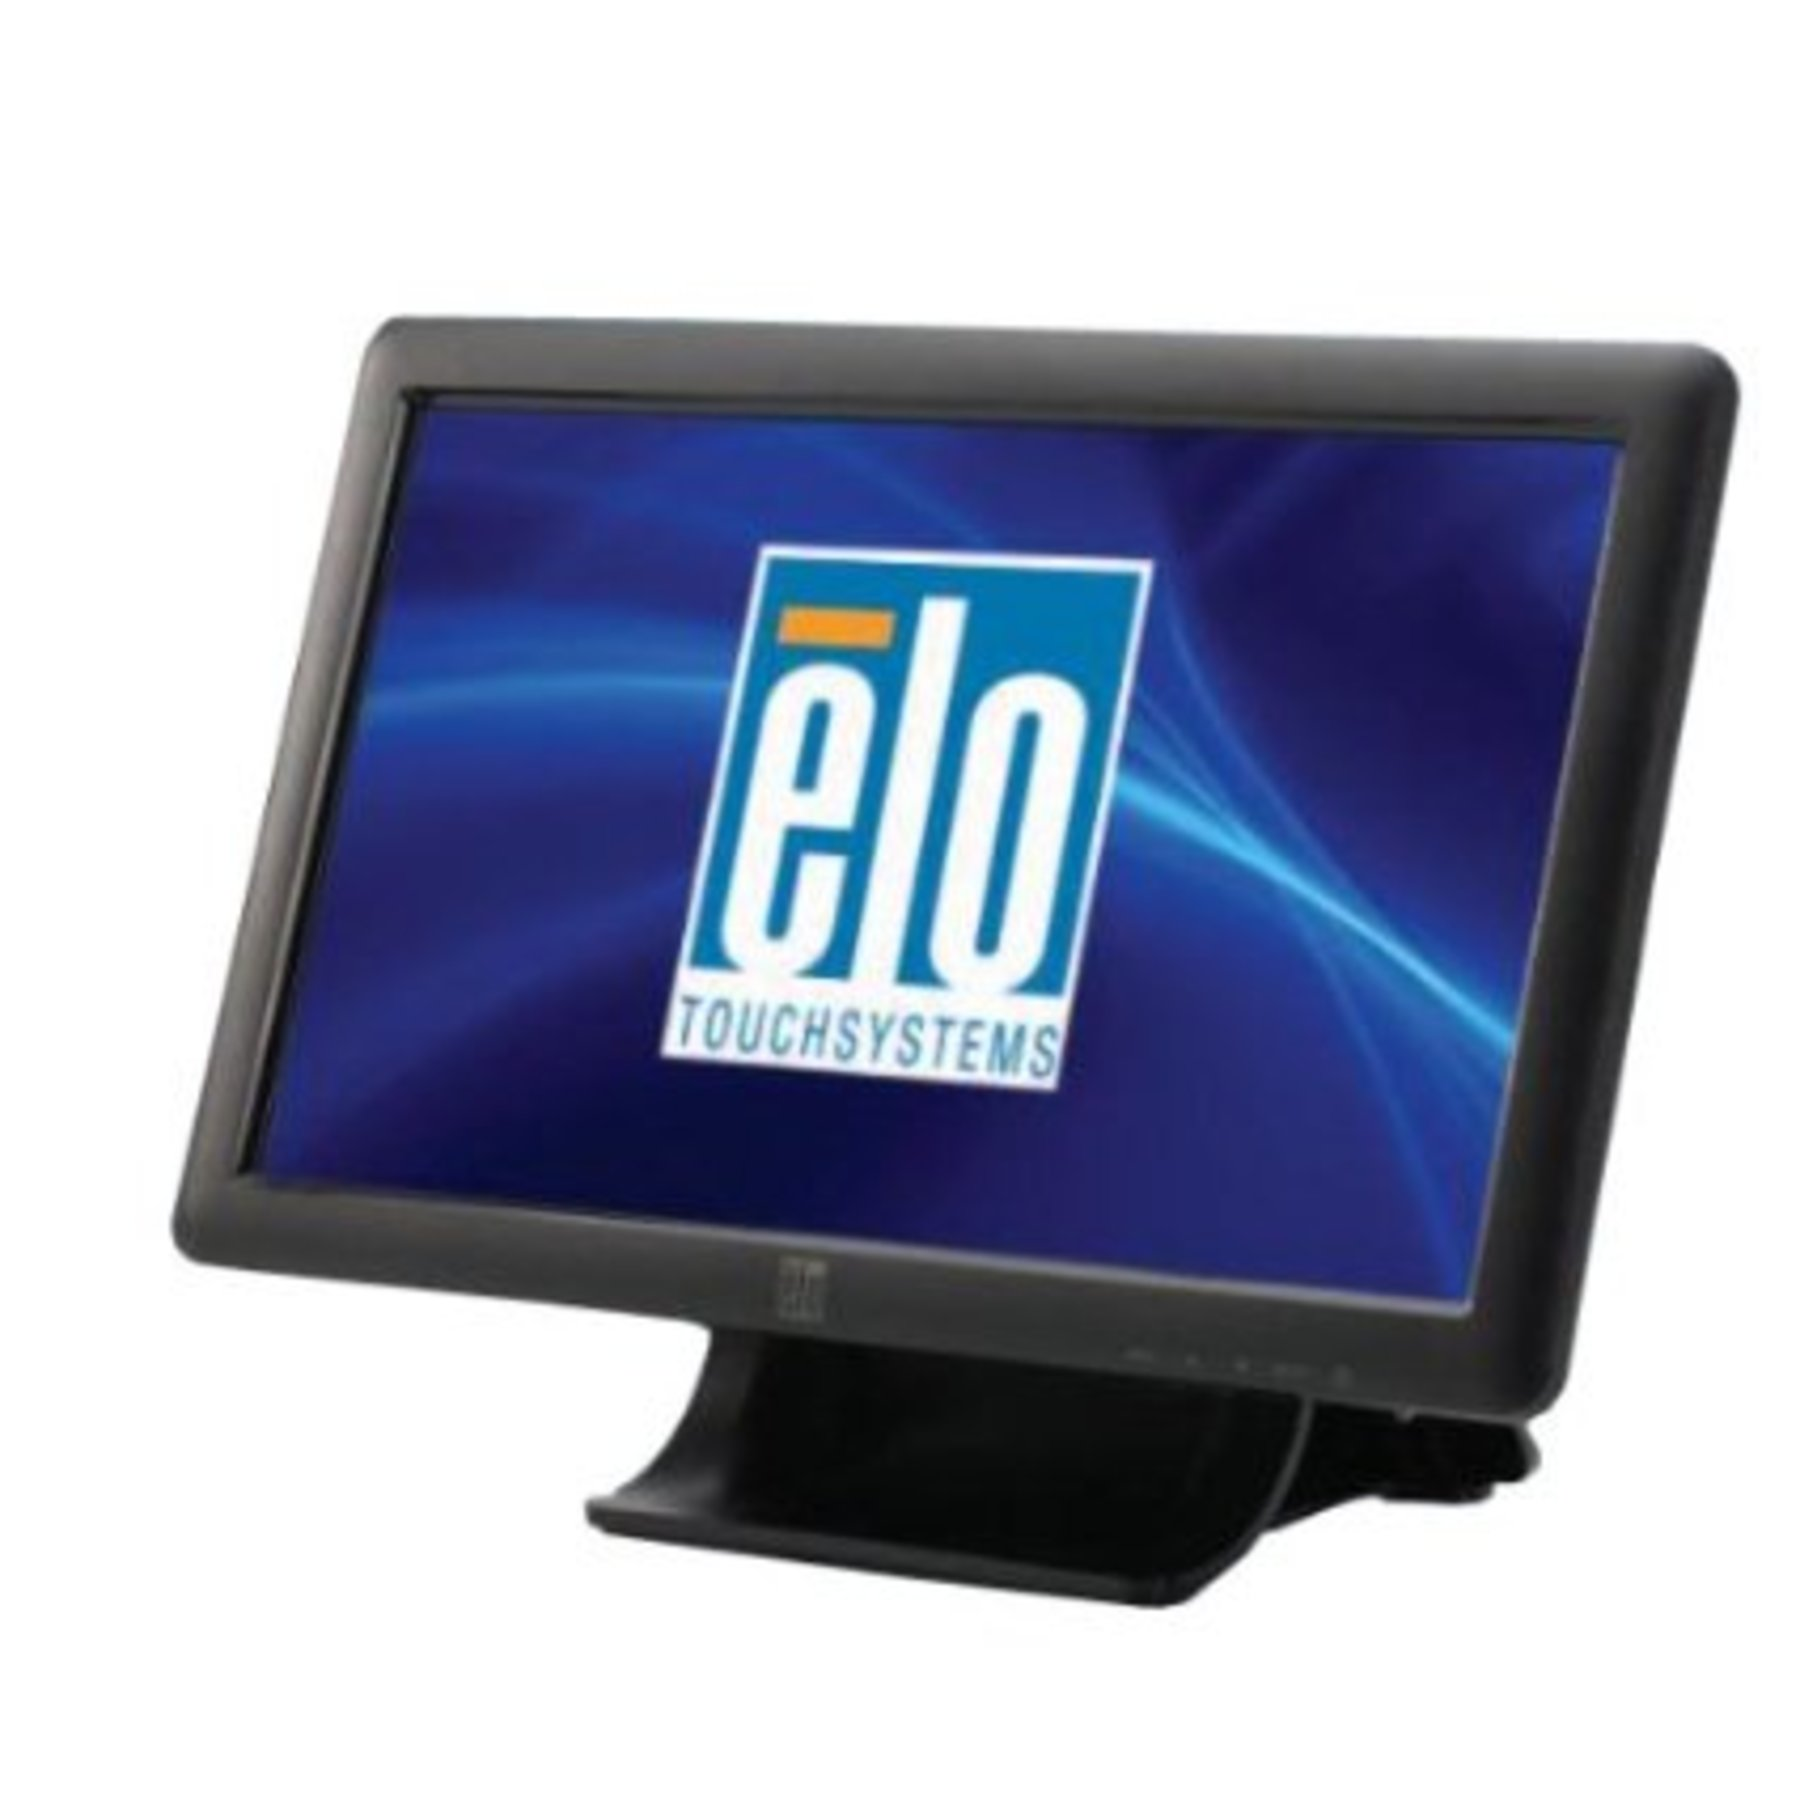 Elo 1509L 15 Inch Widescreen Touch Monitor | Cash Drawers Ireland